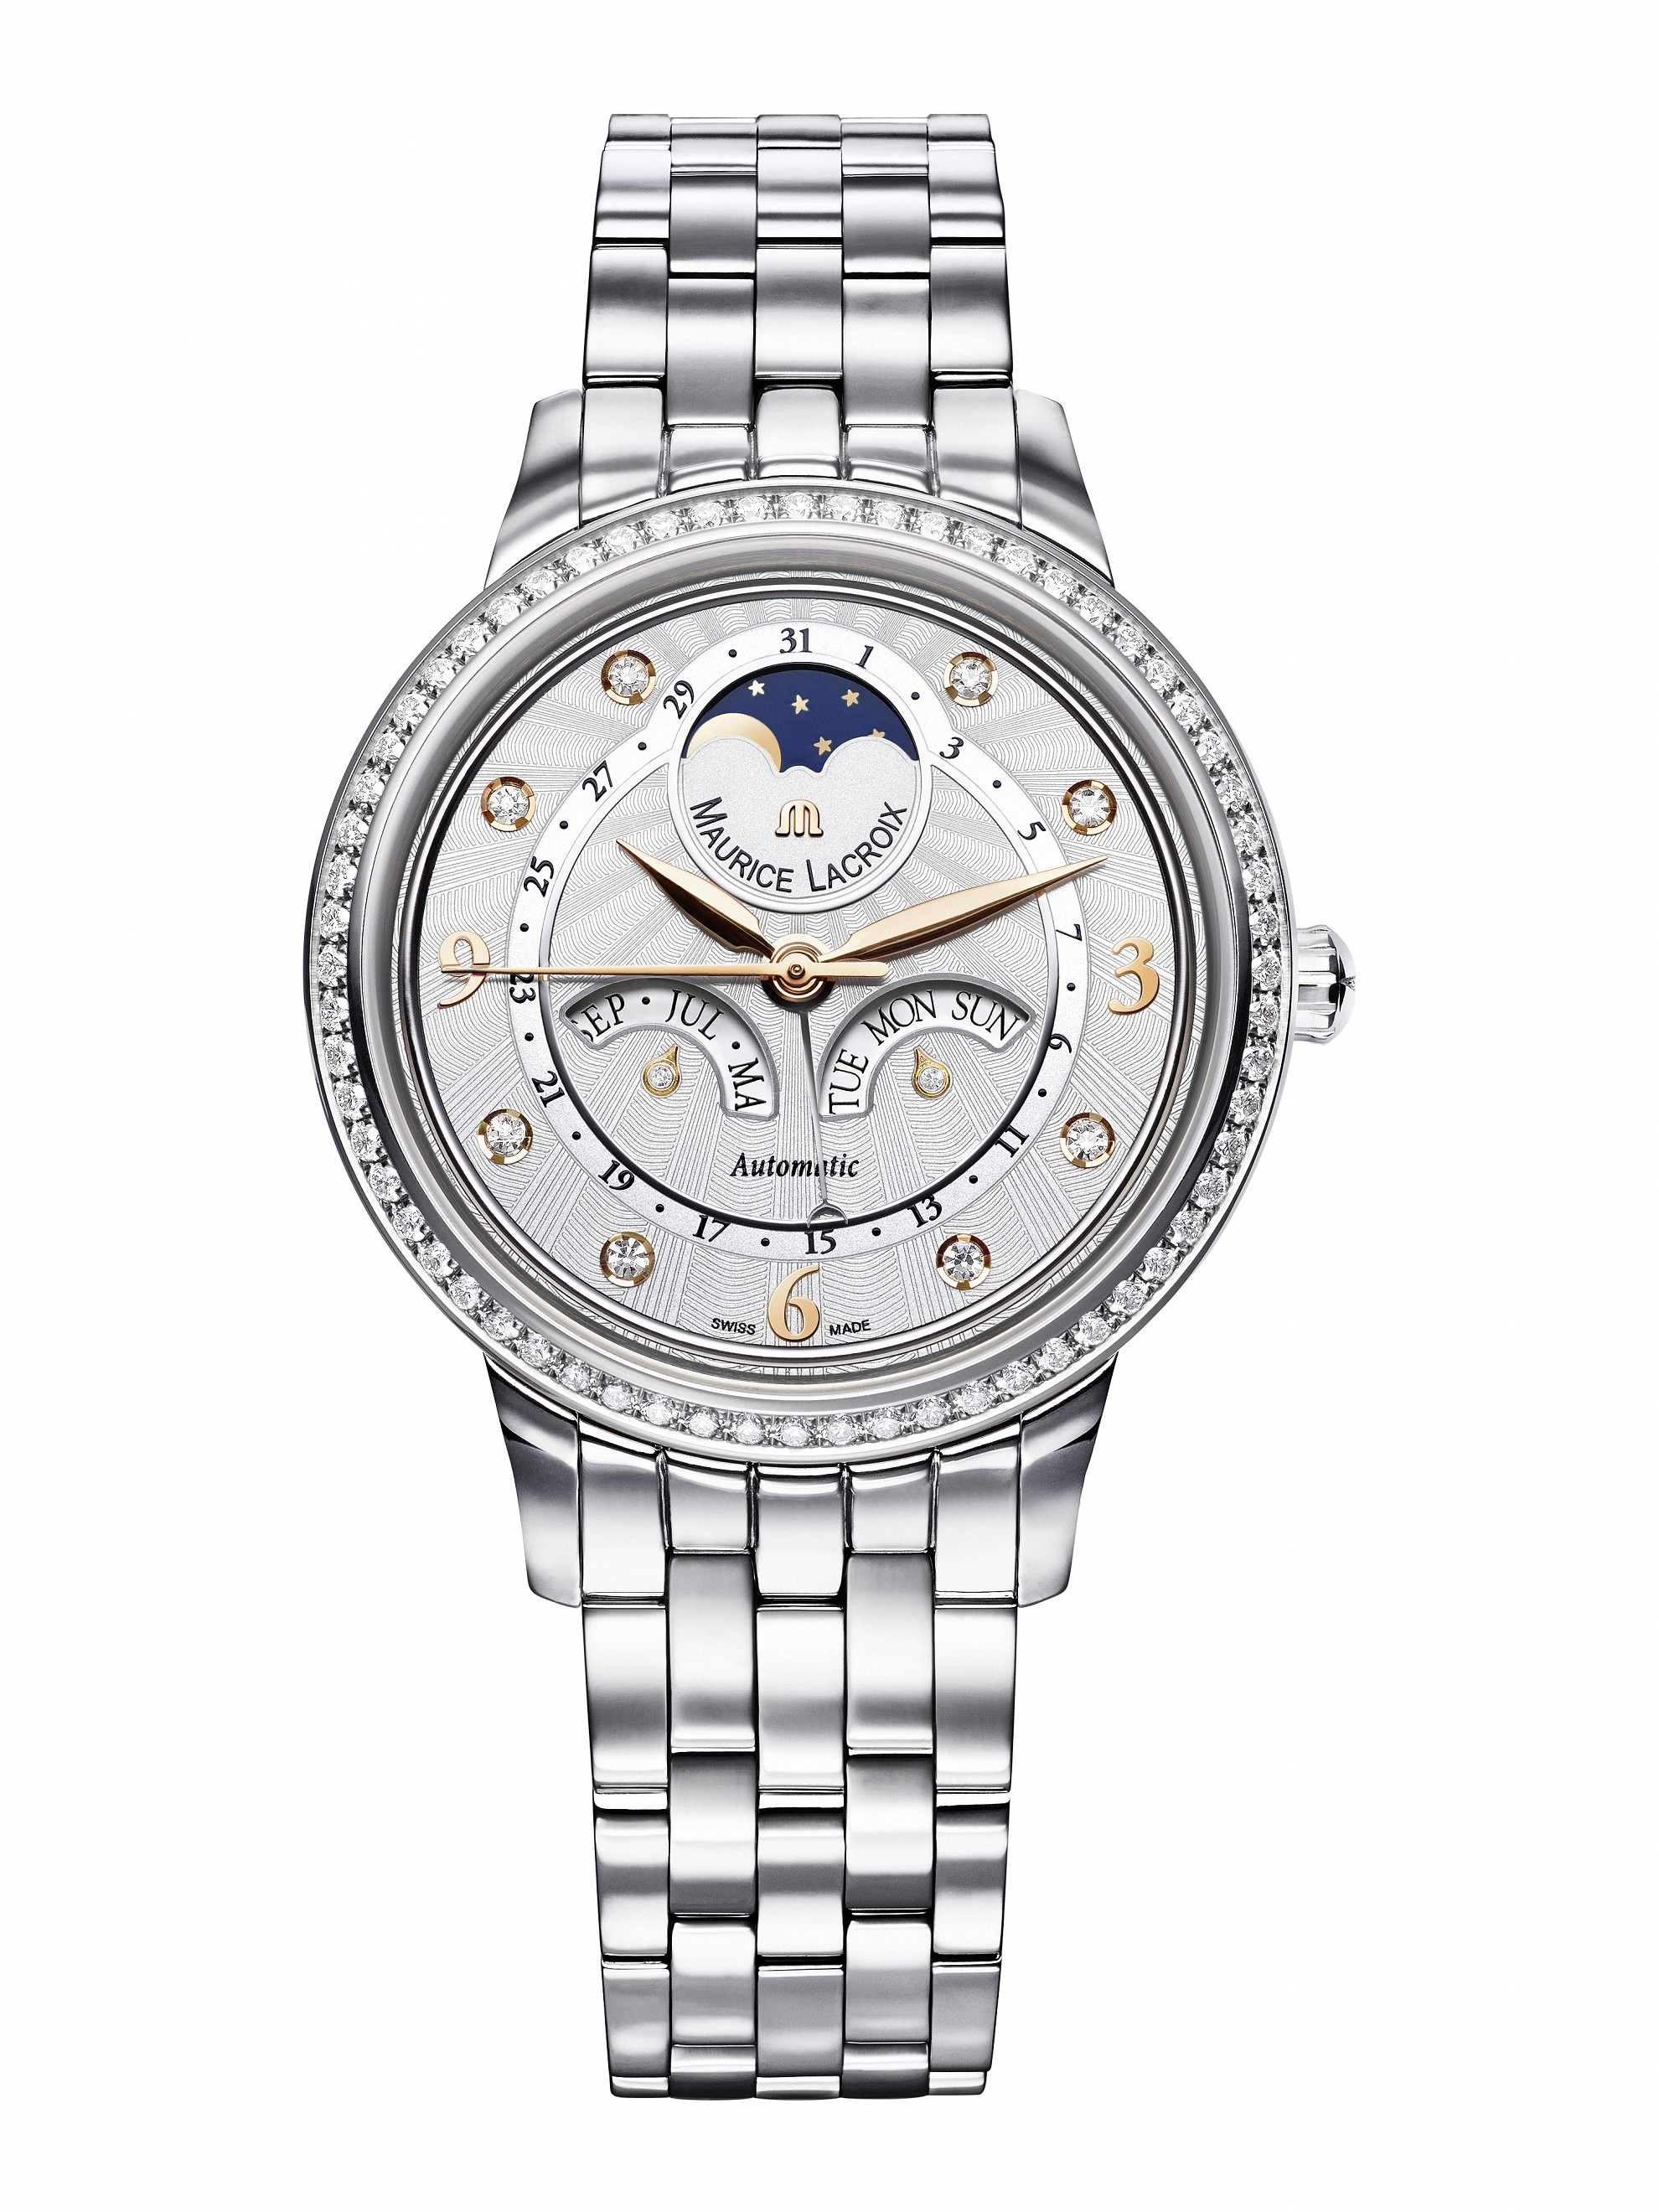 Name:  maurice-lacroix-starside-eternal-moon-silver-dial-automatic-ladies-watch-sd6107-sd502-15e.jpg Views: 31 Size:  923.8 KB